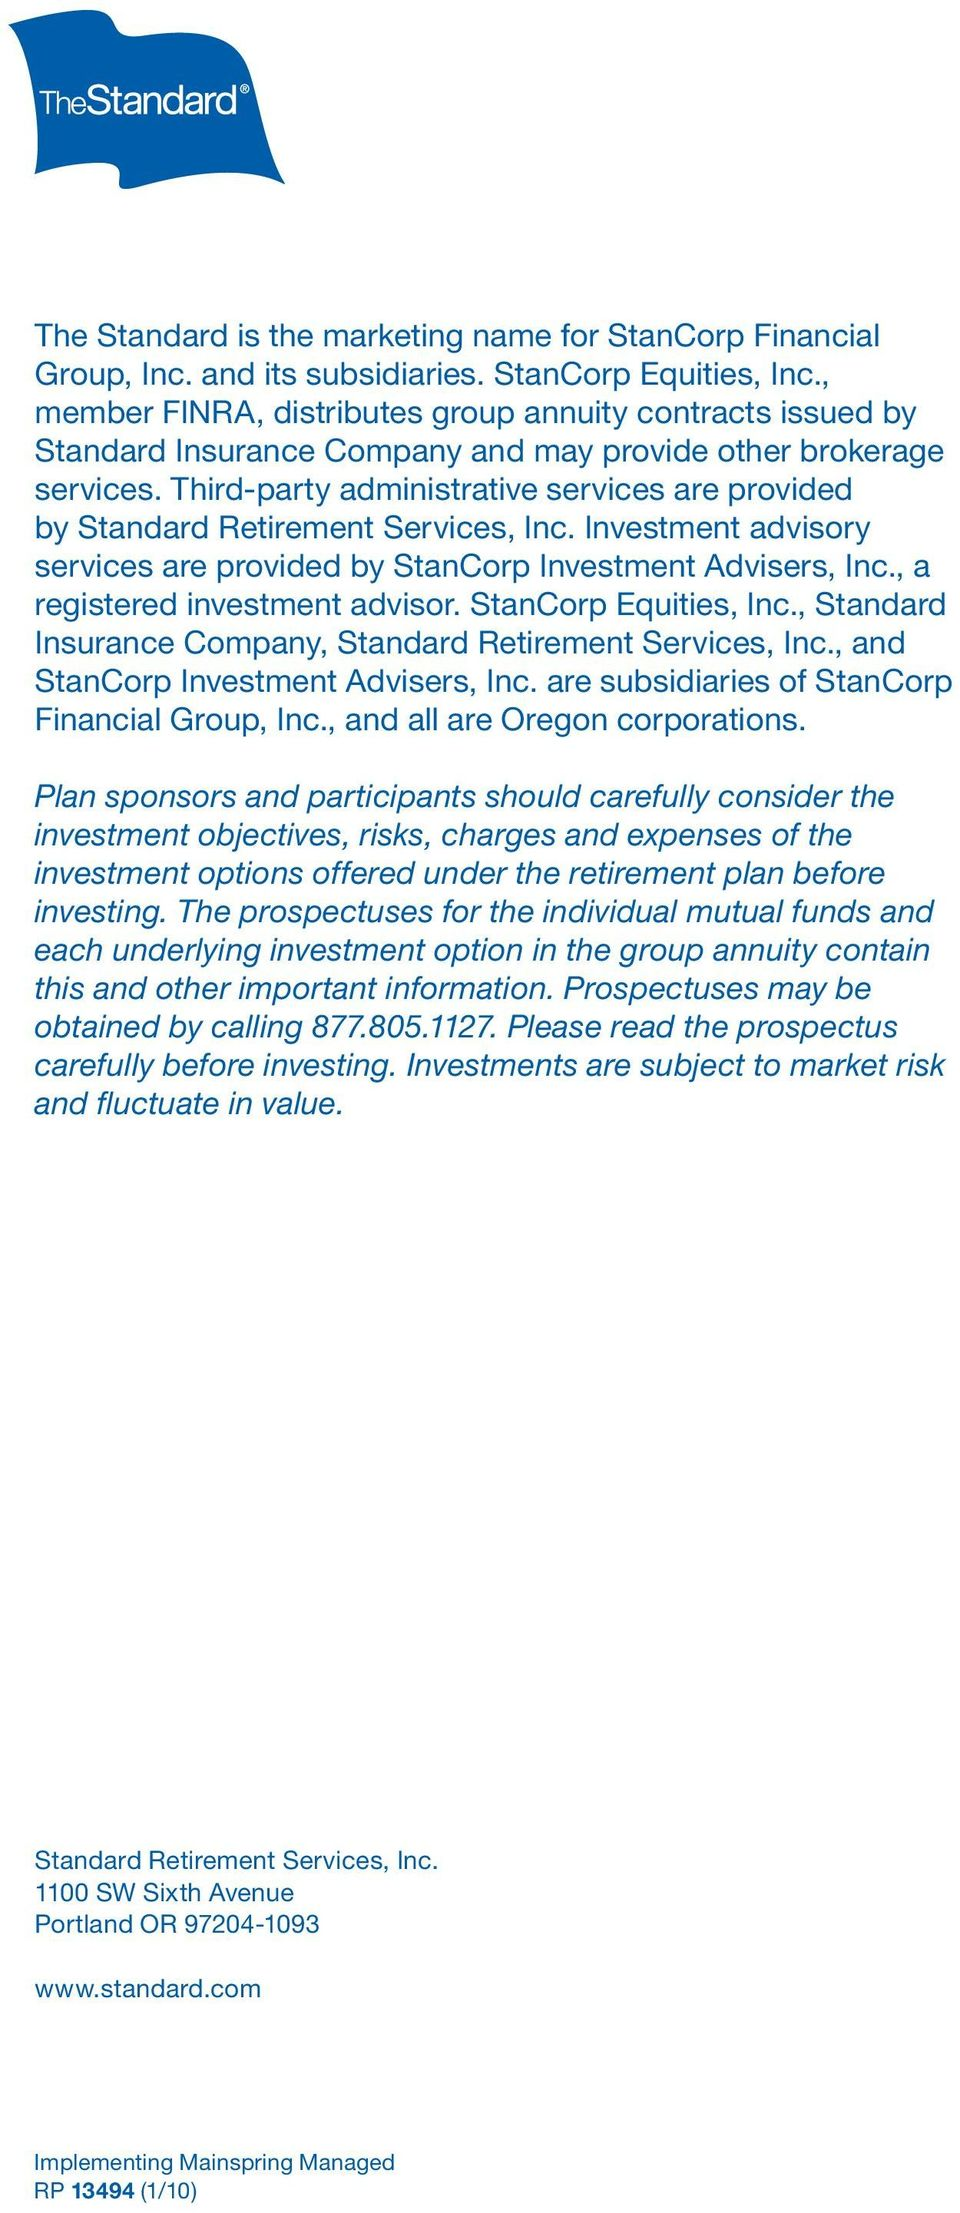 Third-party administrative services are provided by Standard Retirement Services, Inc. Investment advisory services are provided by StanCorp Investment Advisers, Inc., a registered investment advisor.